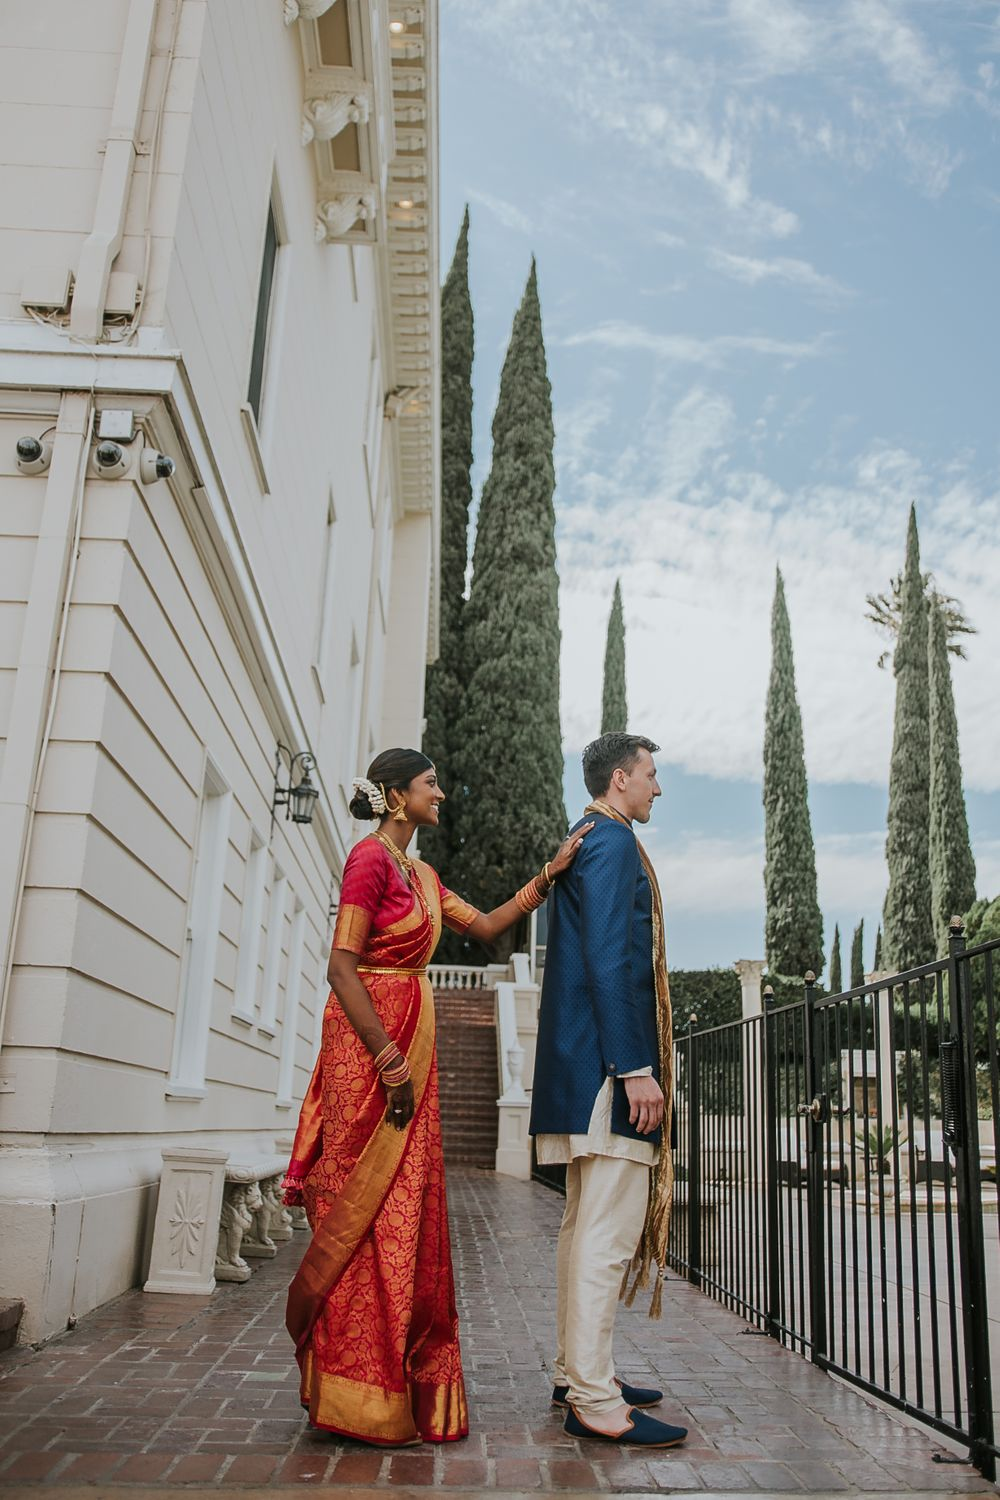 rebecca skidgle photography northen california napa wedding photographer first look bride groom romantic indian